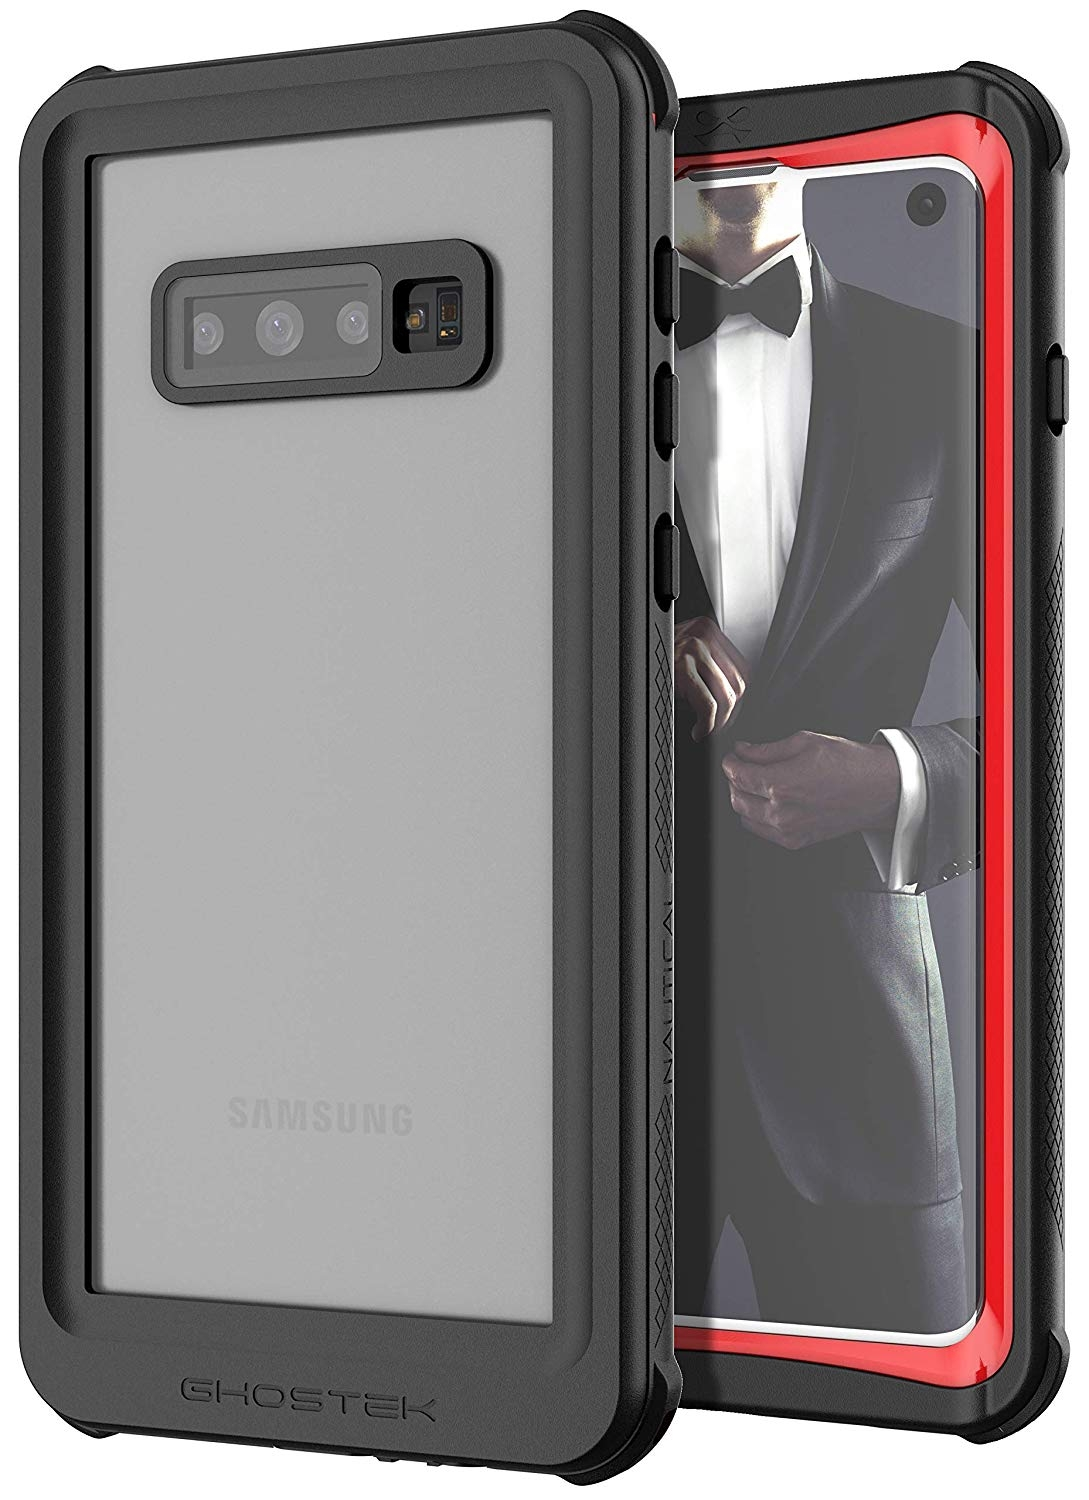 Ghostek Nautical 2 Αδιάβροχη Θήκη Samsung Galaxy S10 - Red / Black (GHOCAS2107)